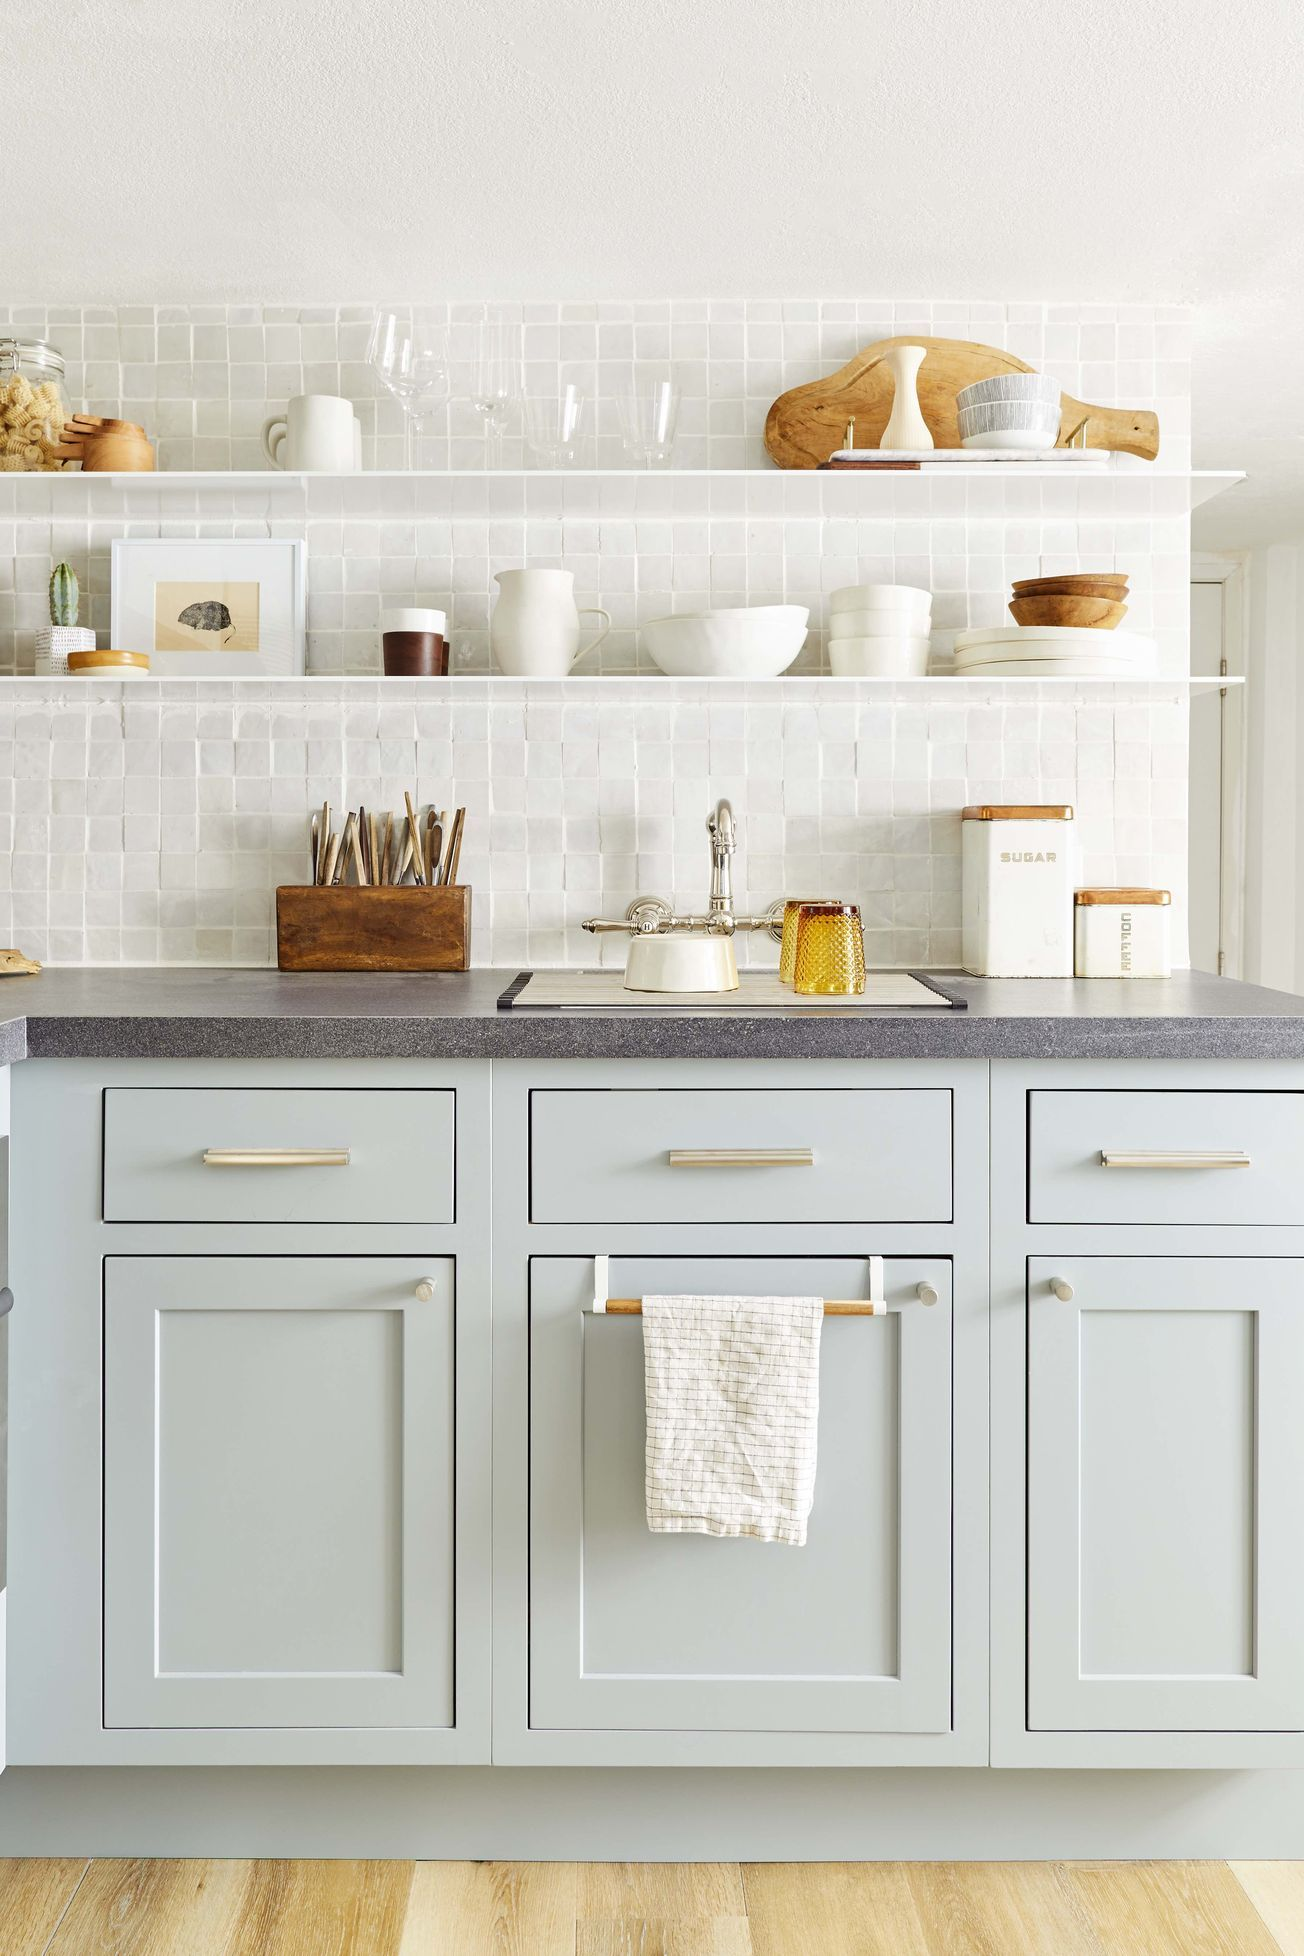 18 Refreshing Kitchen Color Ideas for a Not-So-Boring Space